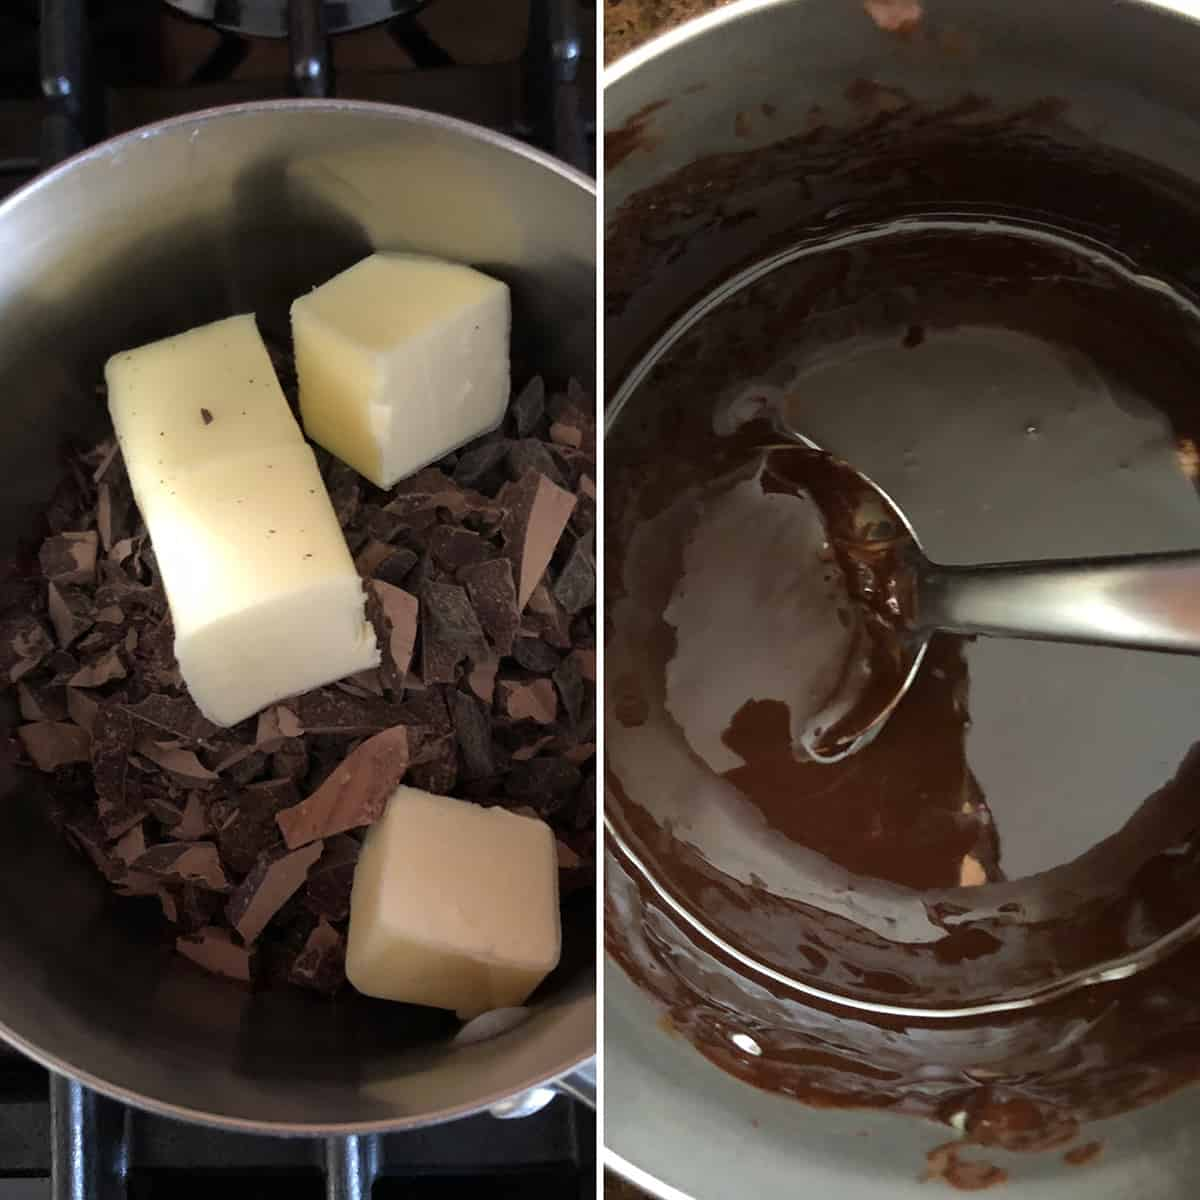 Saucepan with chopped chocolate and butter, heated until melted